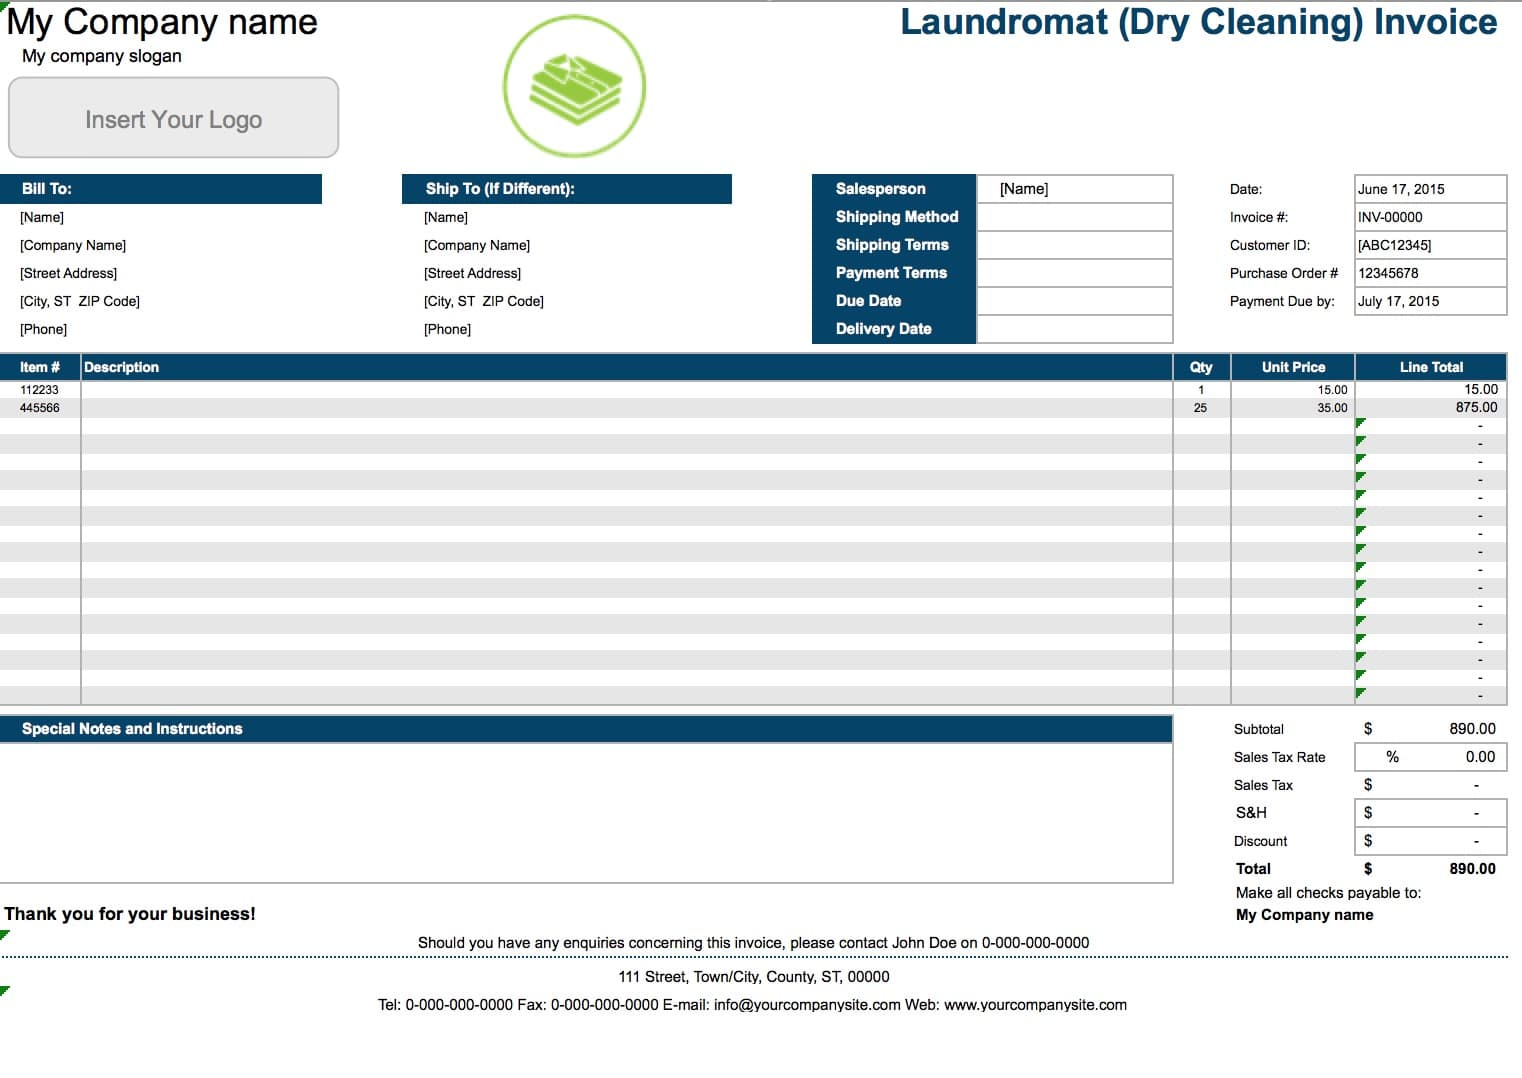 Free Laundromat Dry Cleaning Invoice Template Excel PDF - Cleaning service invoice template